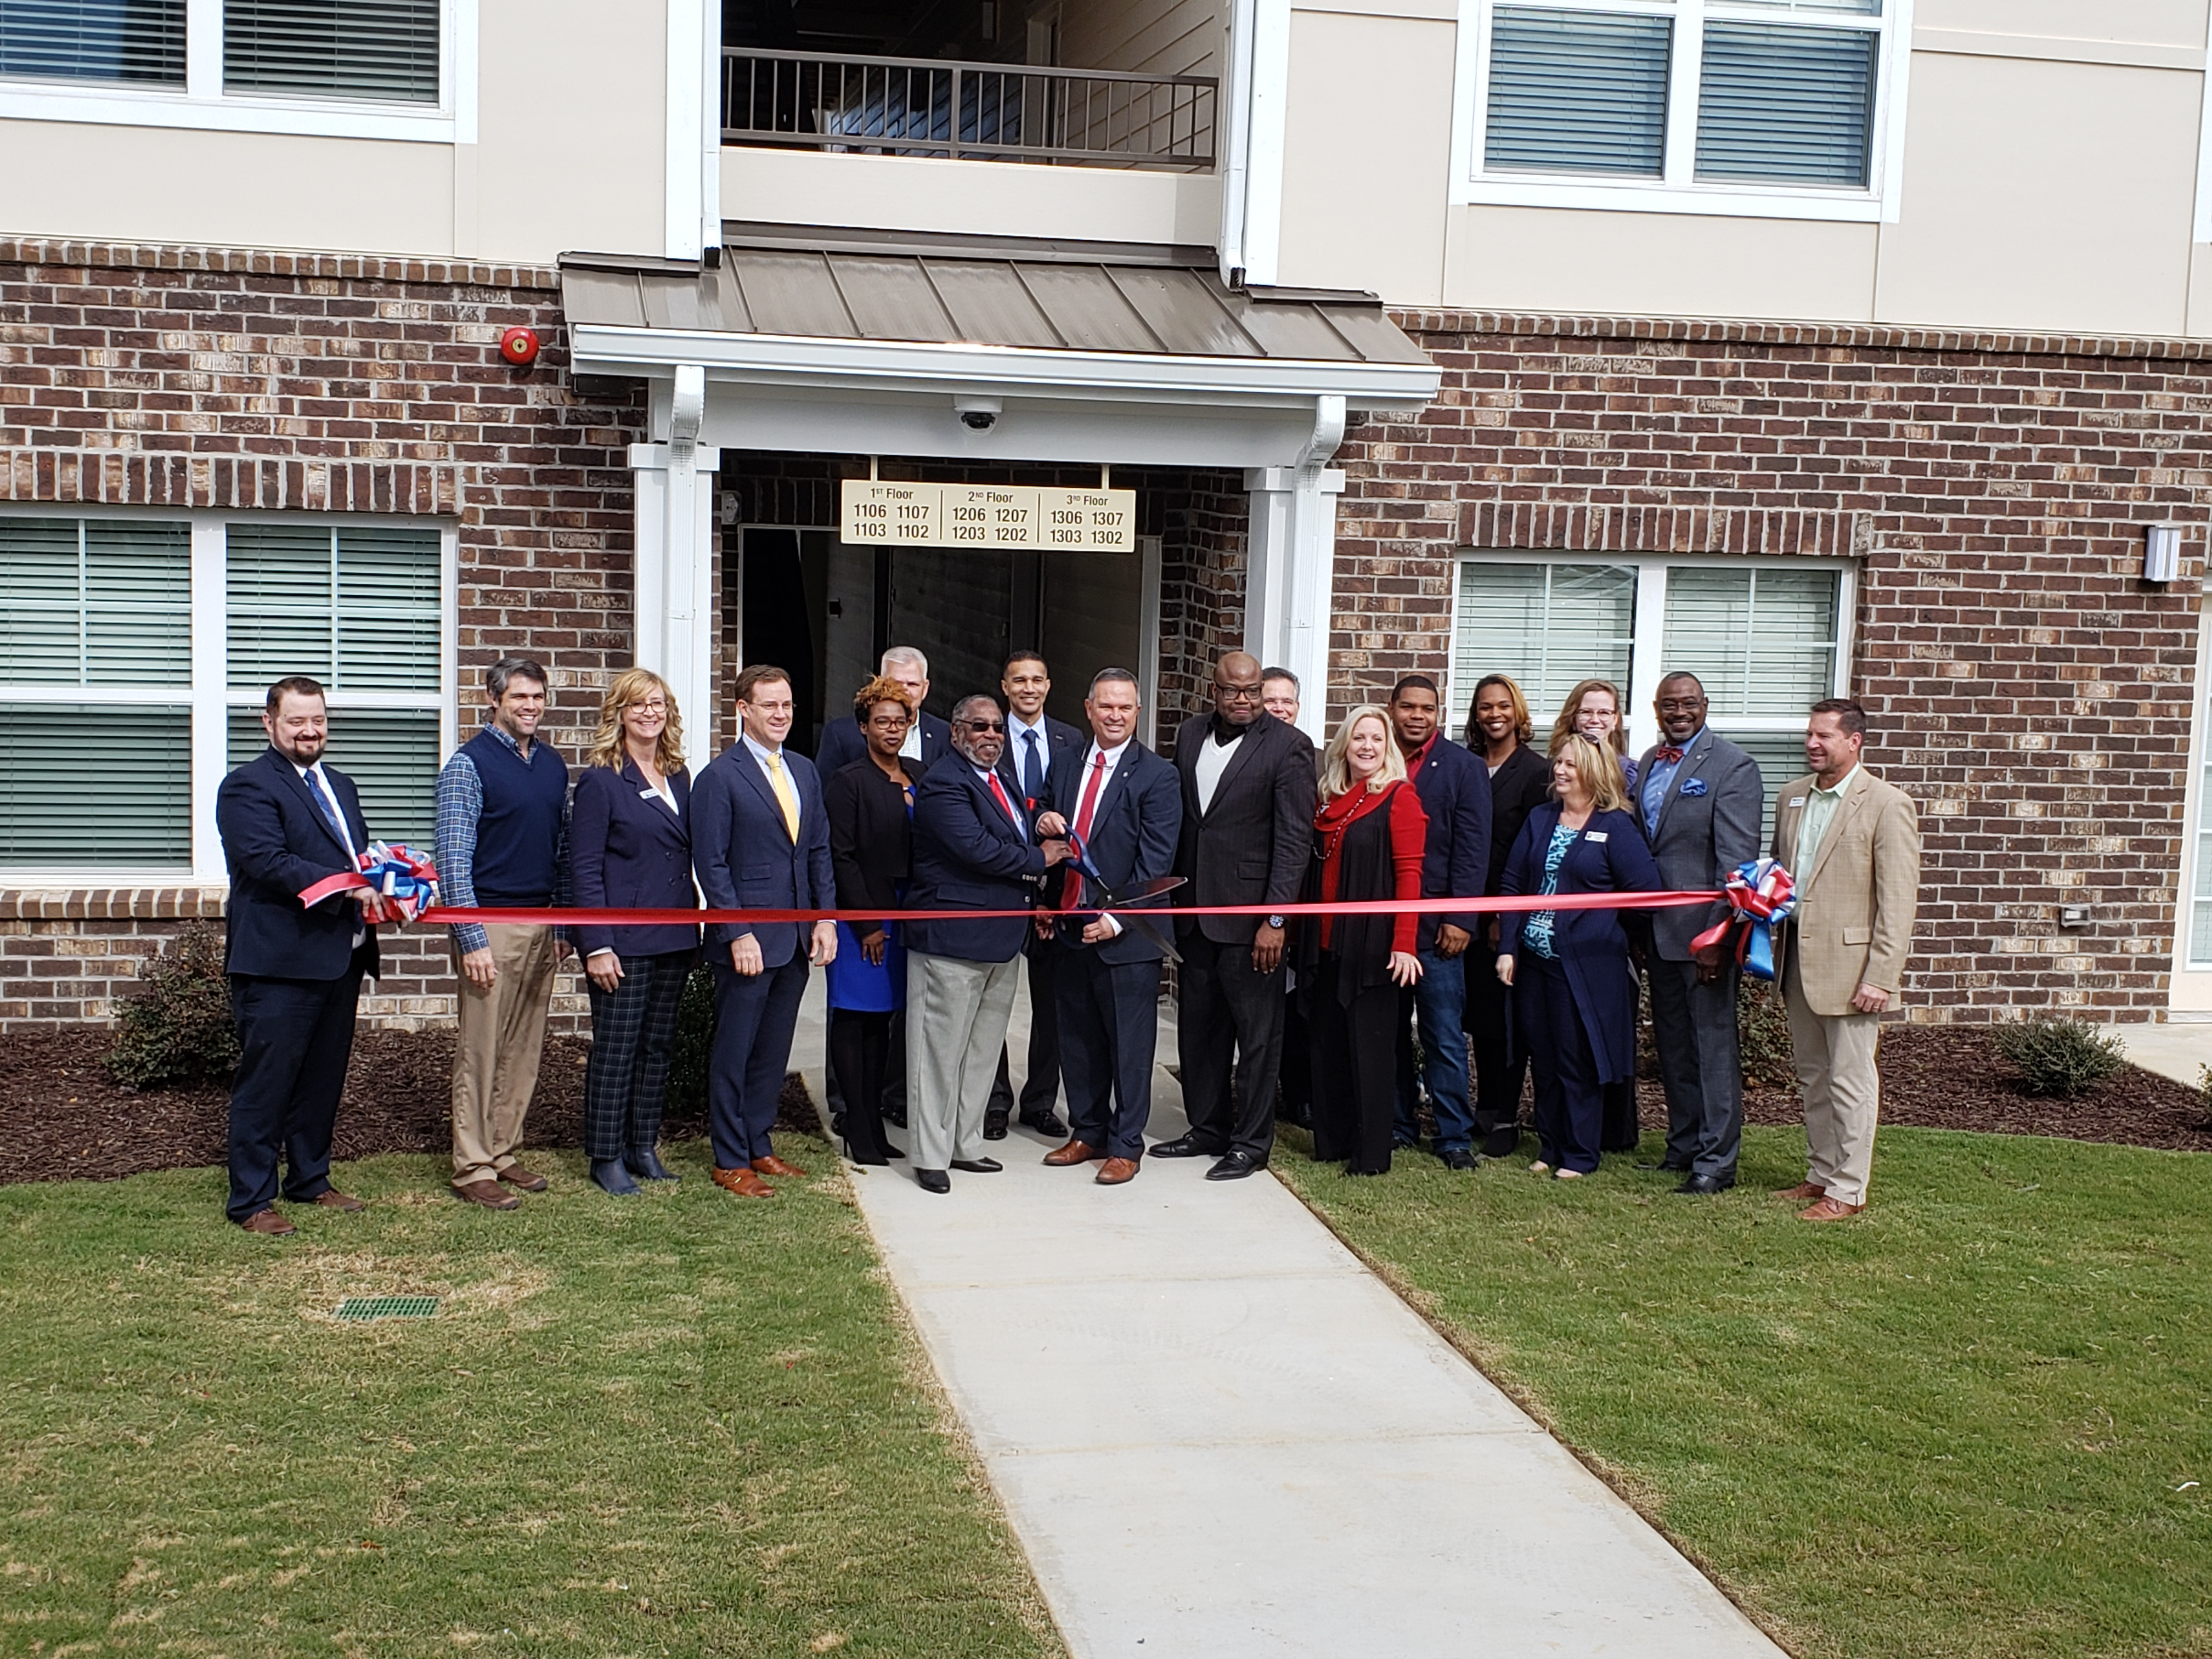 Officials cut the ribbon on a mixed-income community in Georgia.